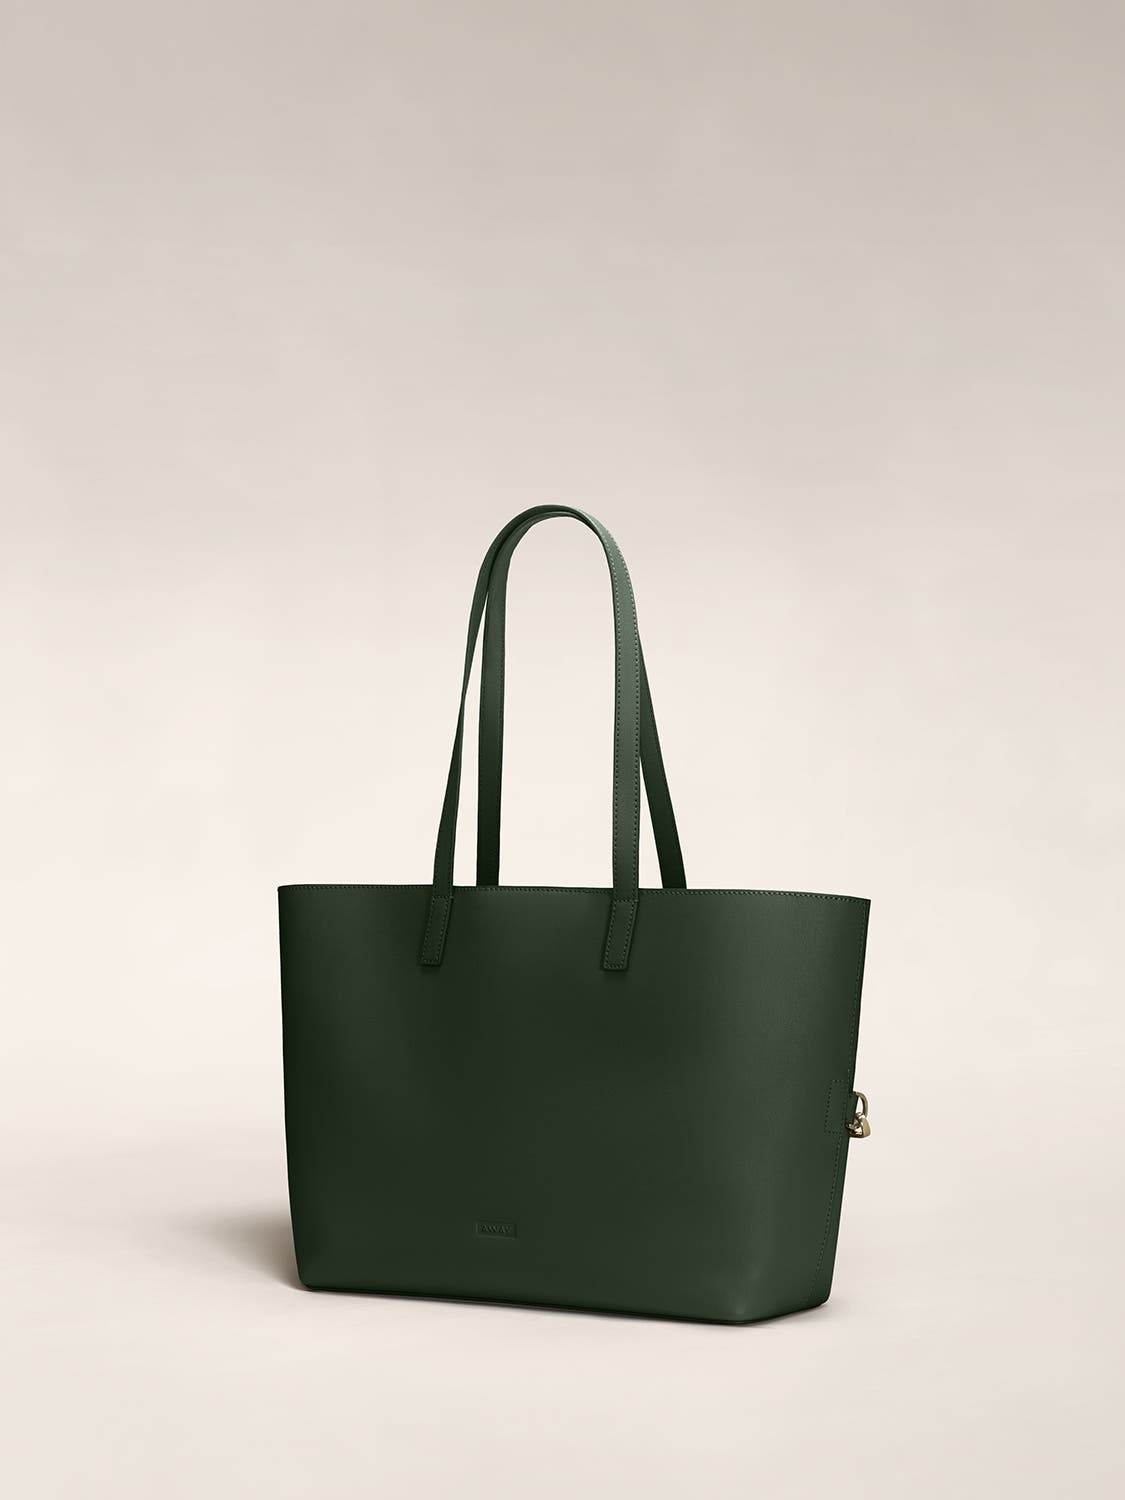 Angled view of a pine leather tote travel bag in leather.